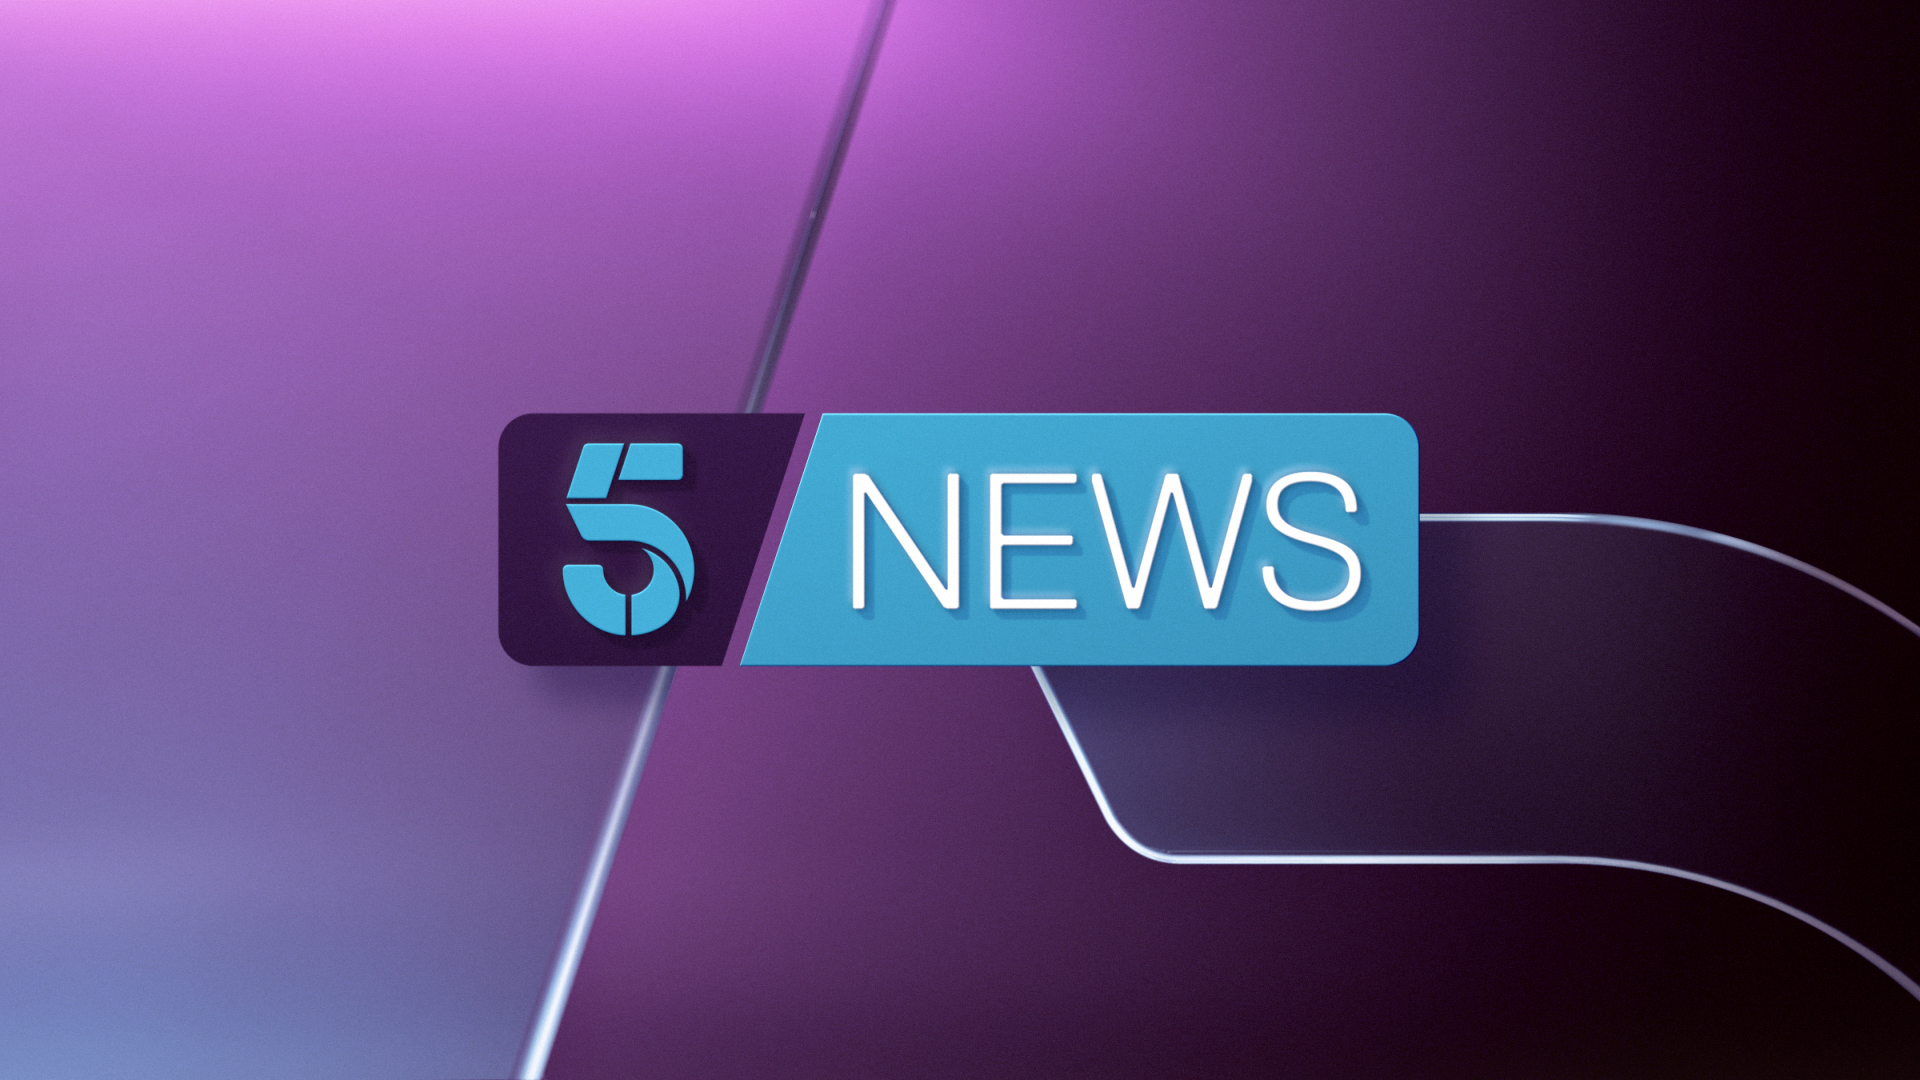 NCS_channel-5-news-motion_0001